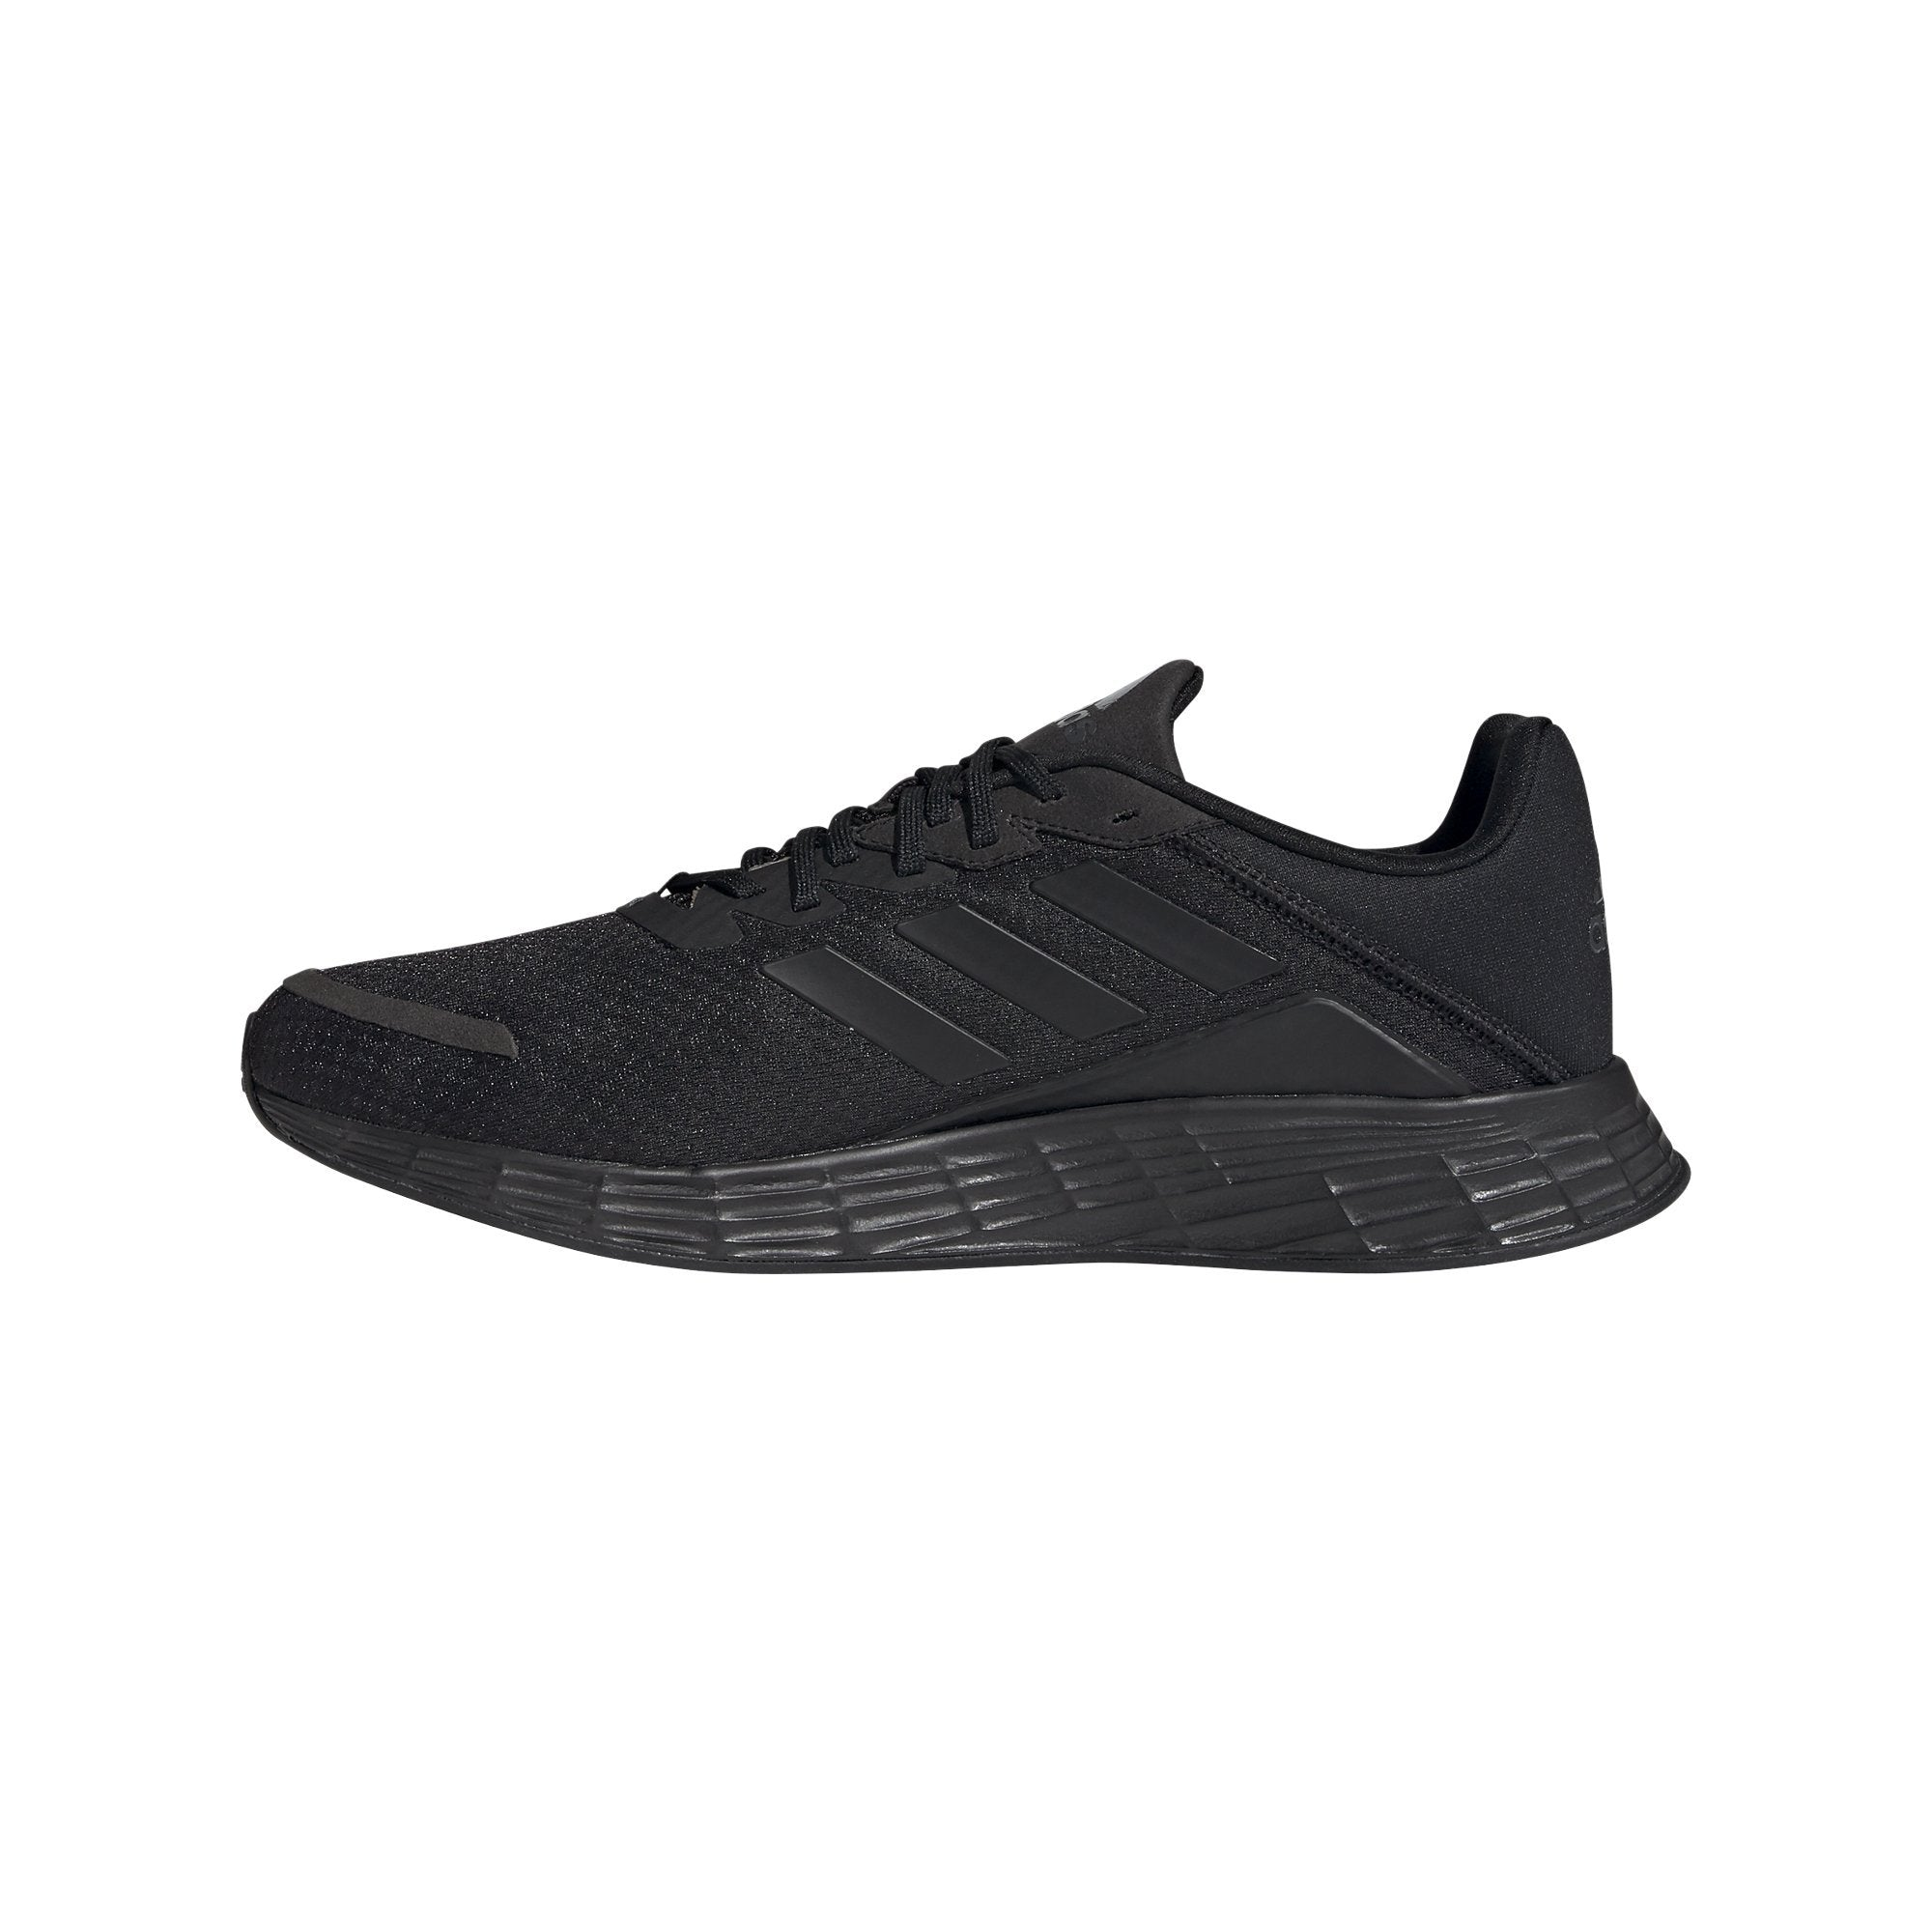 Adidas Mens Duramo SL Shoes - Core Black/Core Black/Core Black SP-Footwear-Mens Adidas